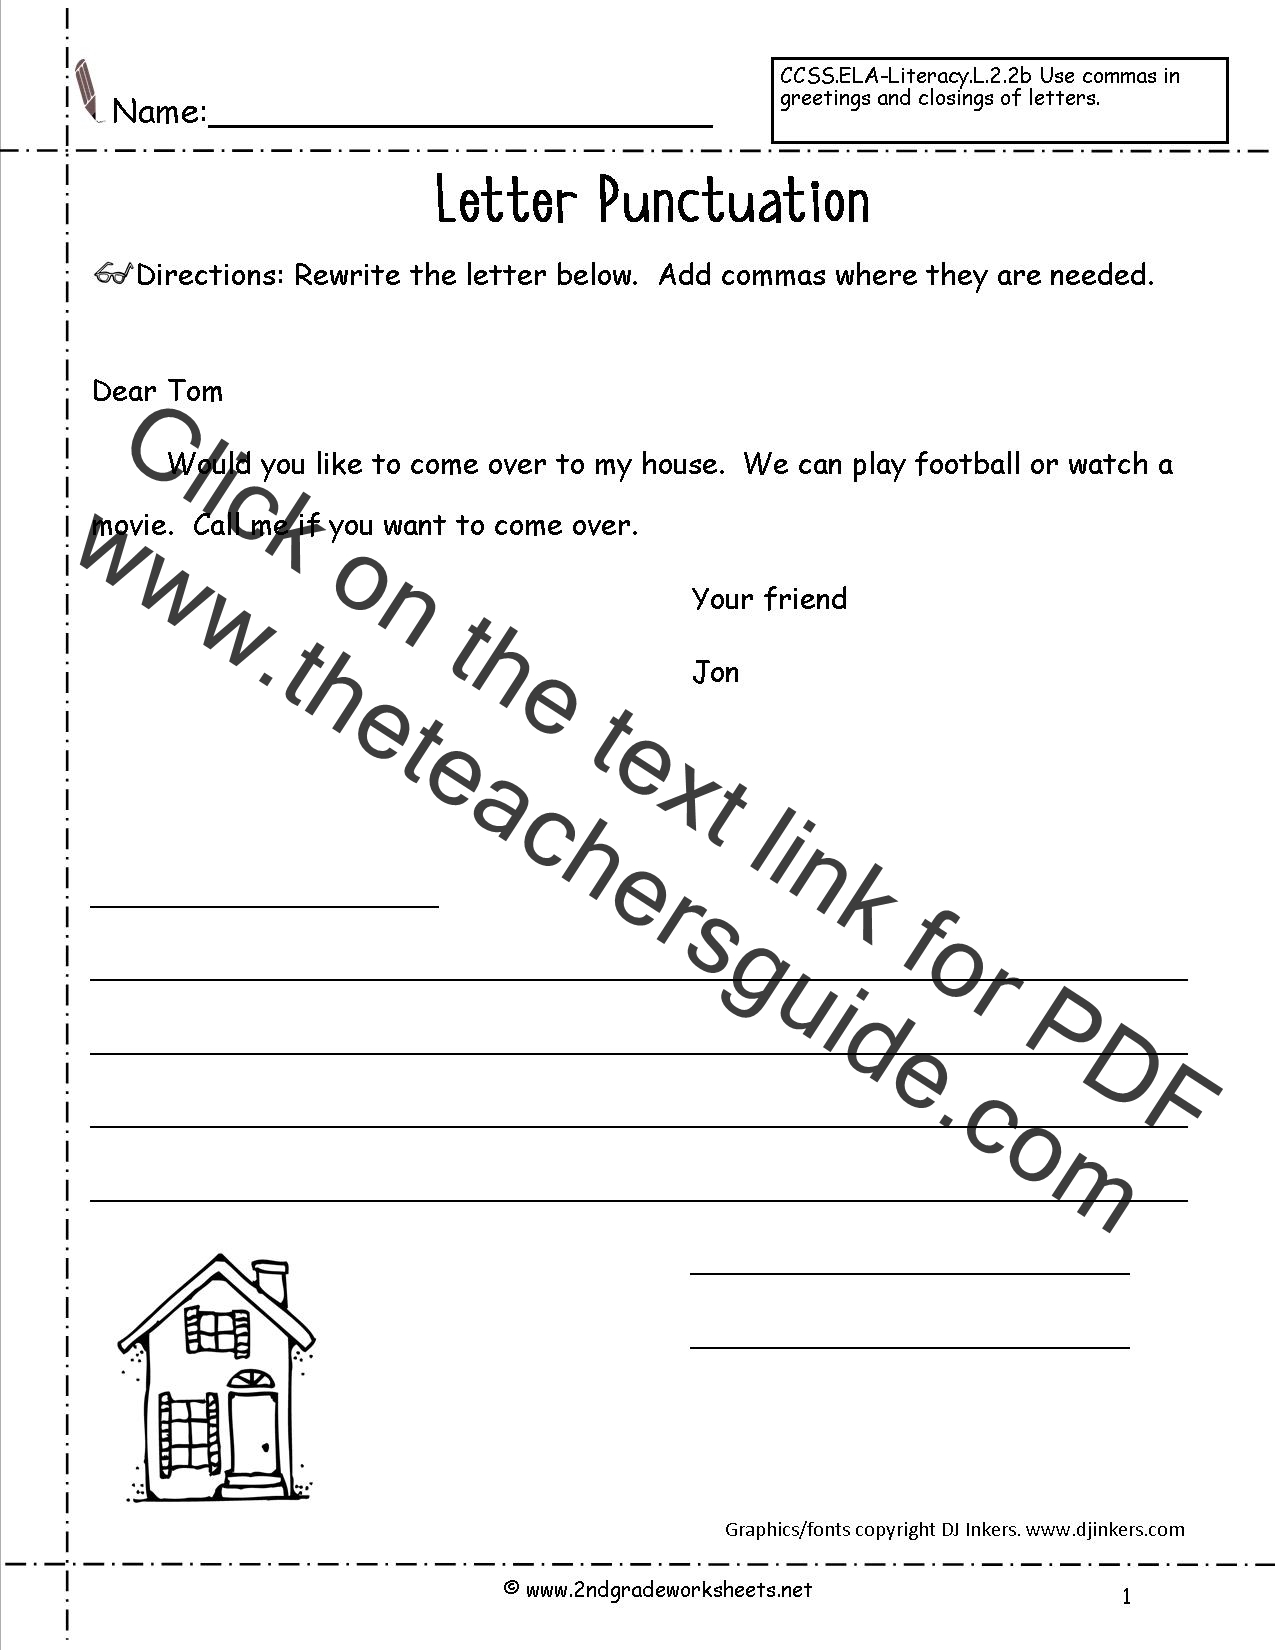 Letters and Parts of a Letter Worksheet – Using Commas Worksheet